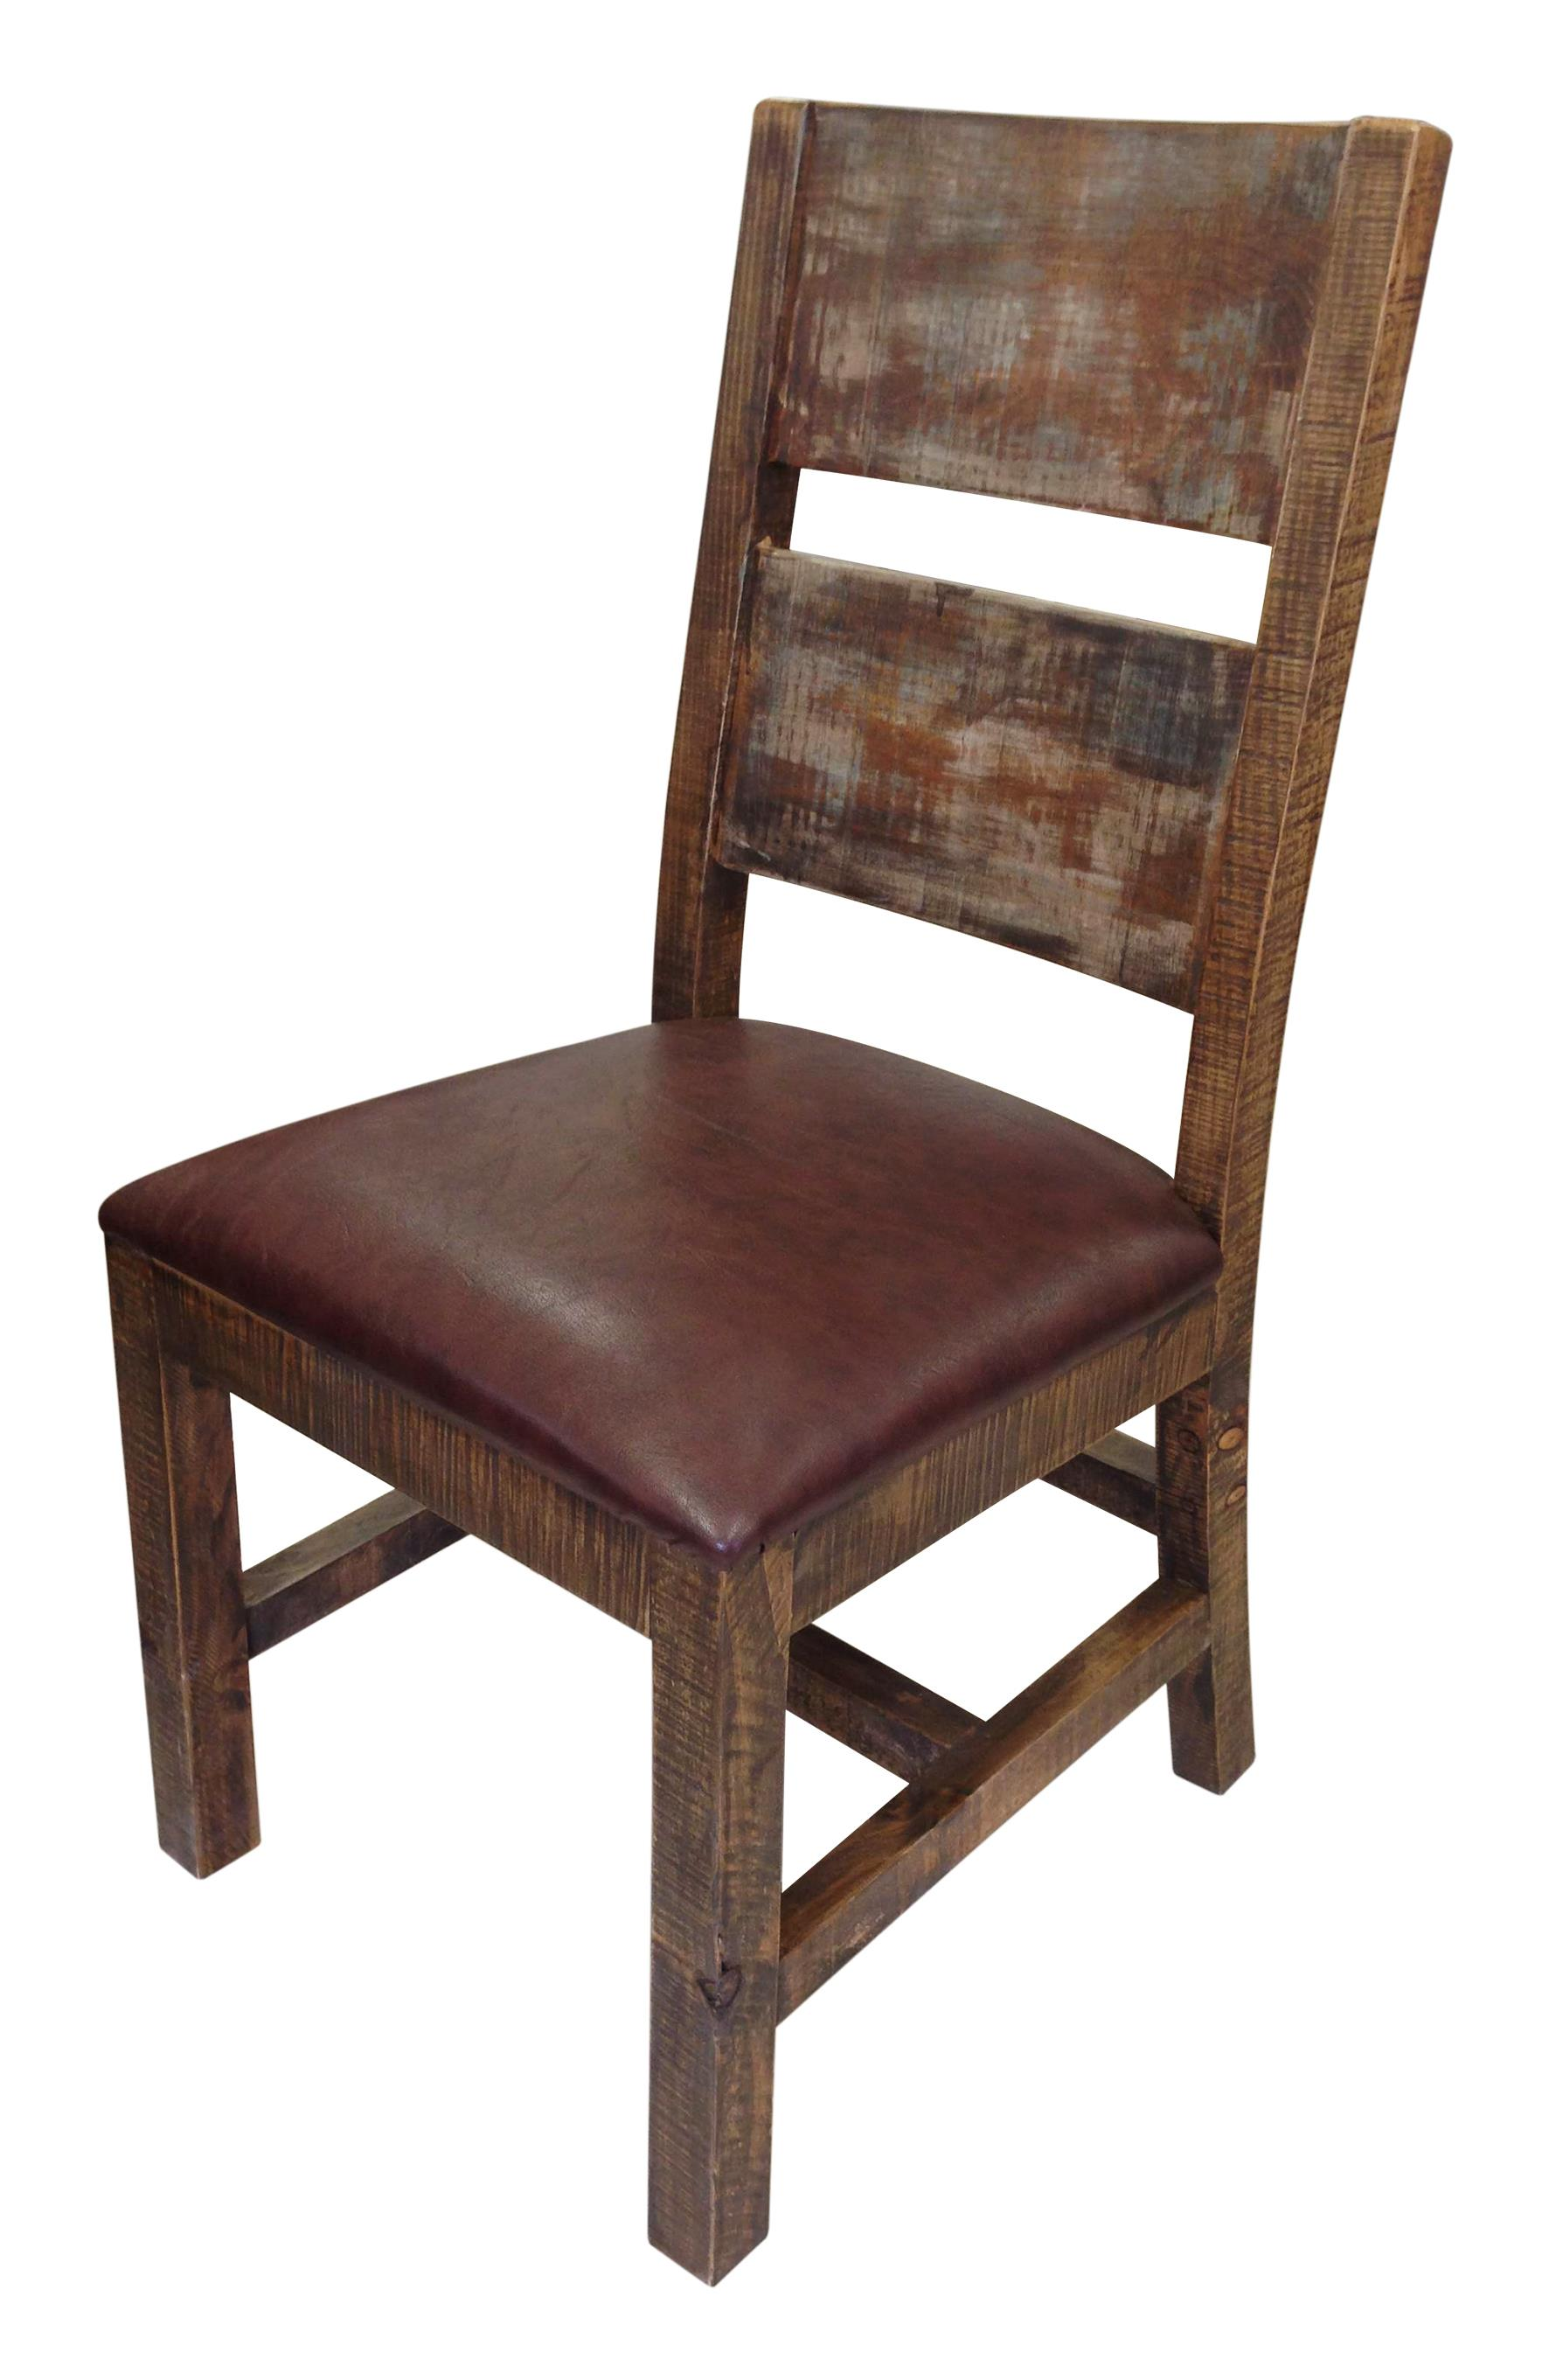 Enjoyable 900 Antique Solid Wood Chair With Bonded Leather Seat Cjindustries Chair Design For Home Cjindustriesco